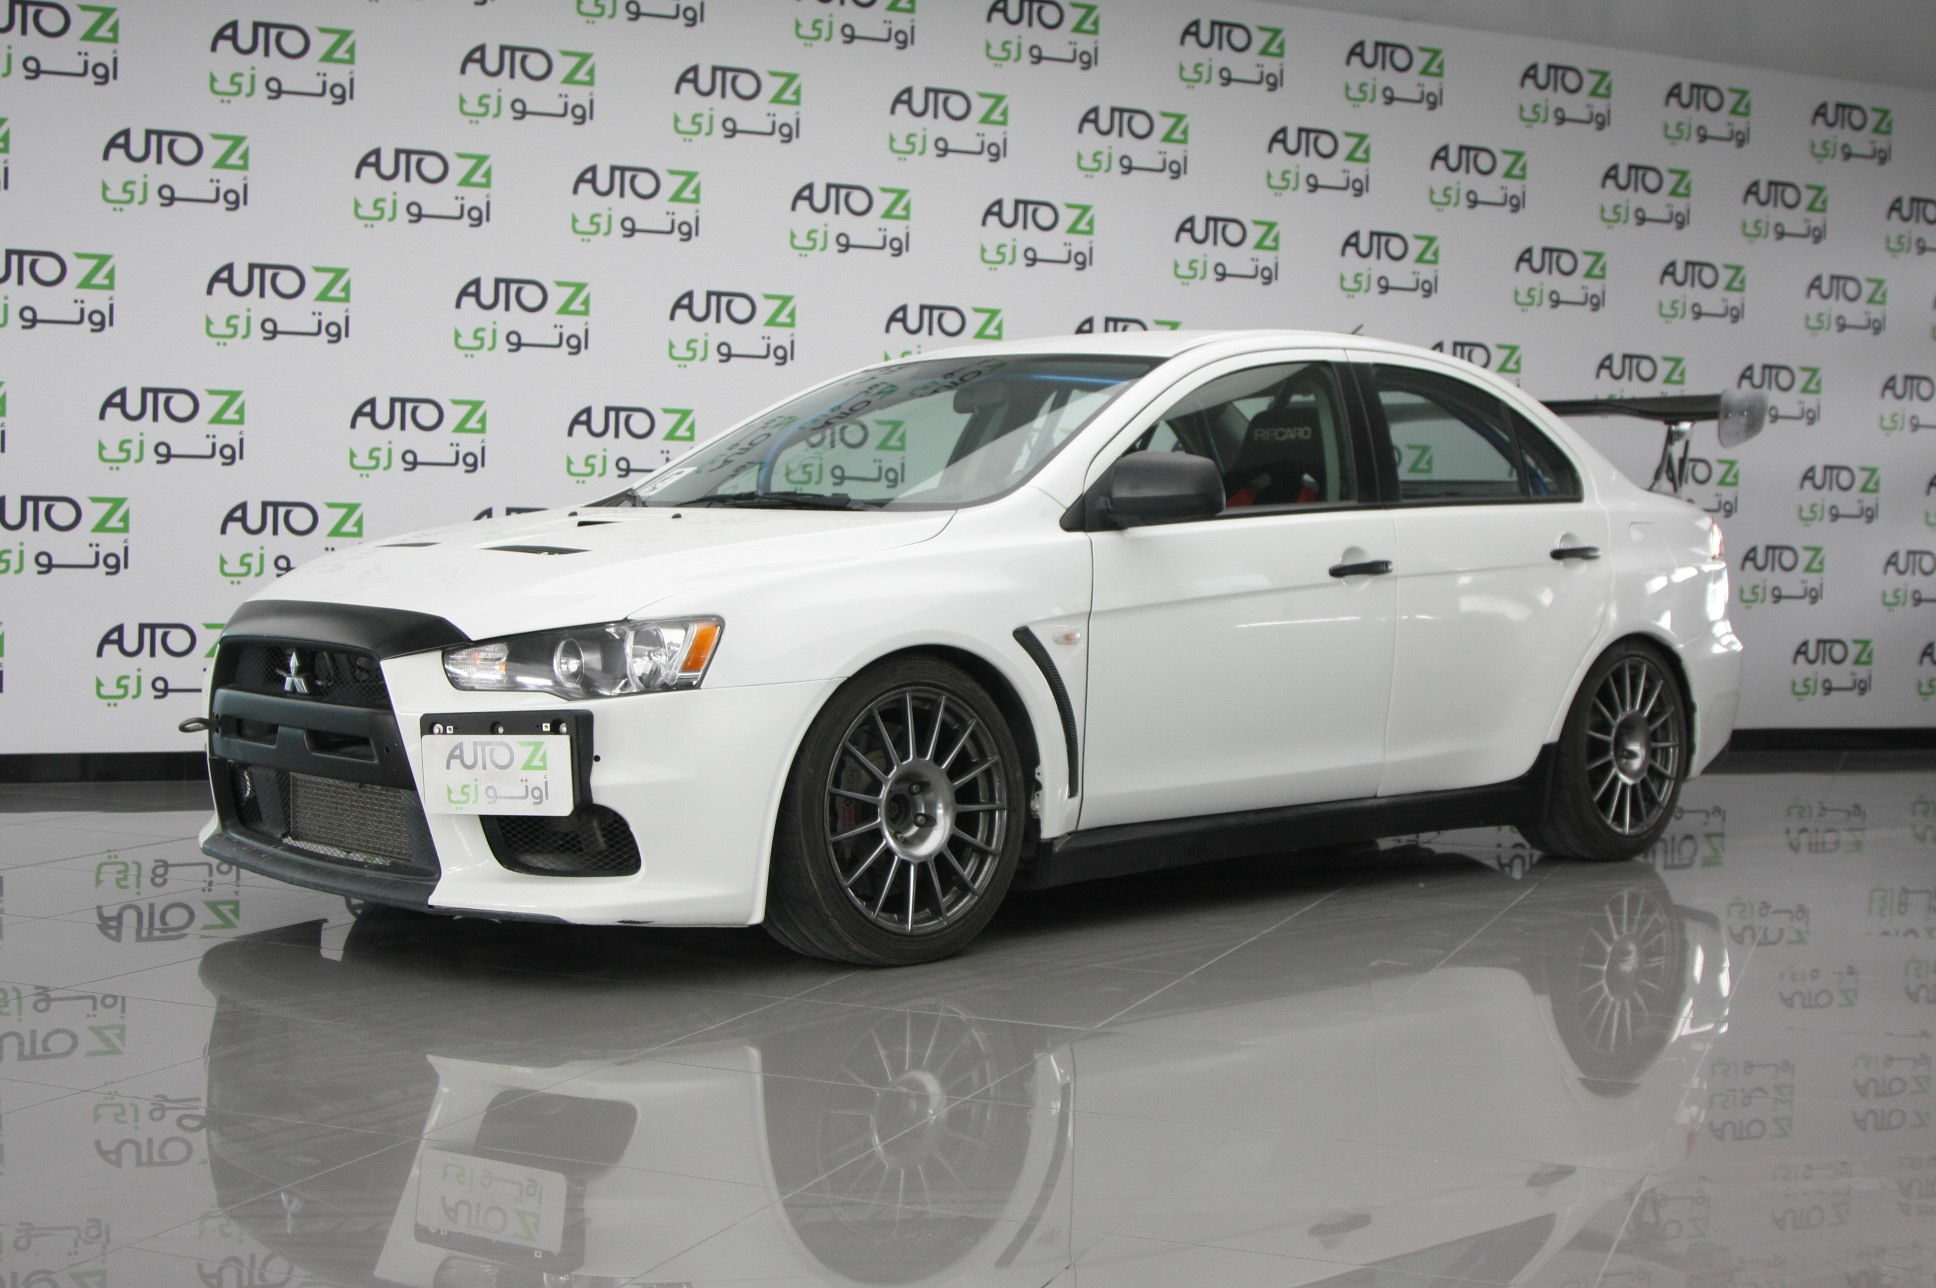 2009 Mitsubishi Lancer Evolution | White Color